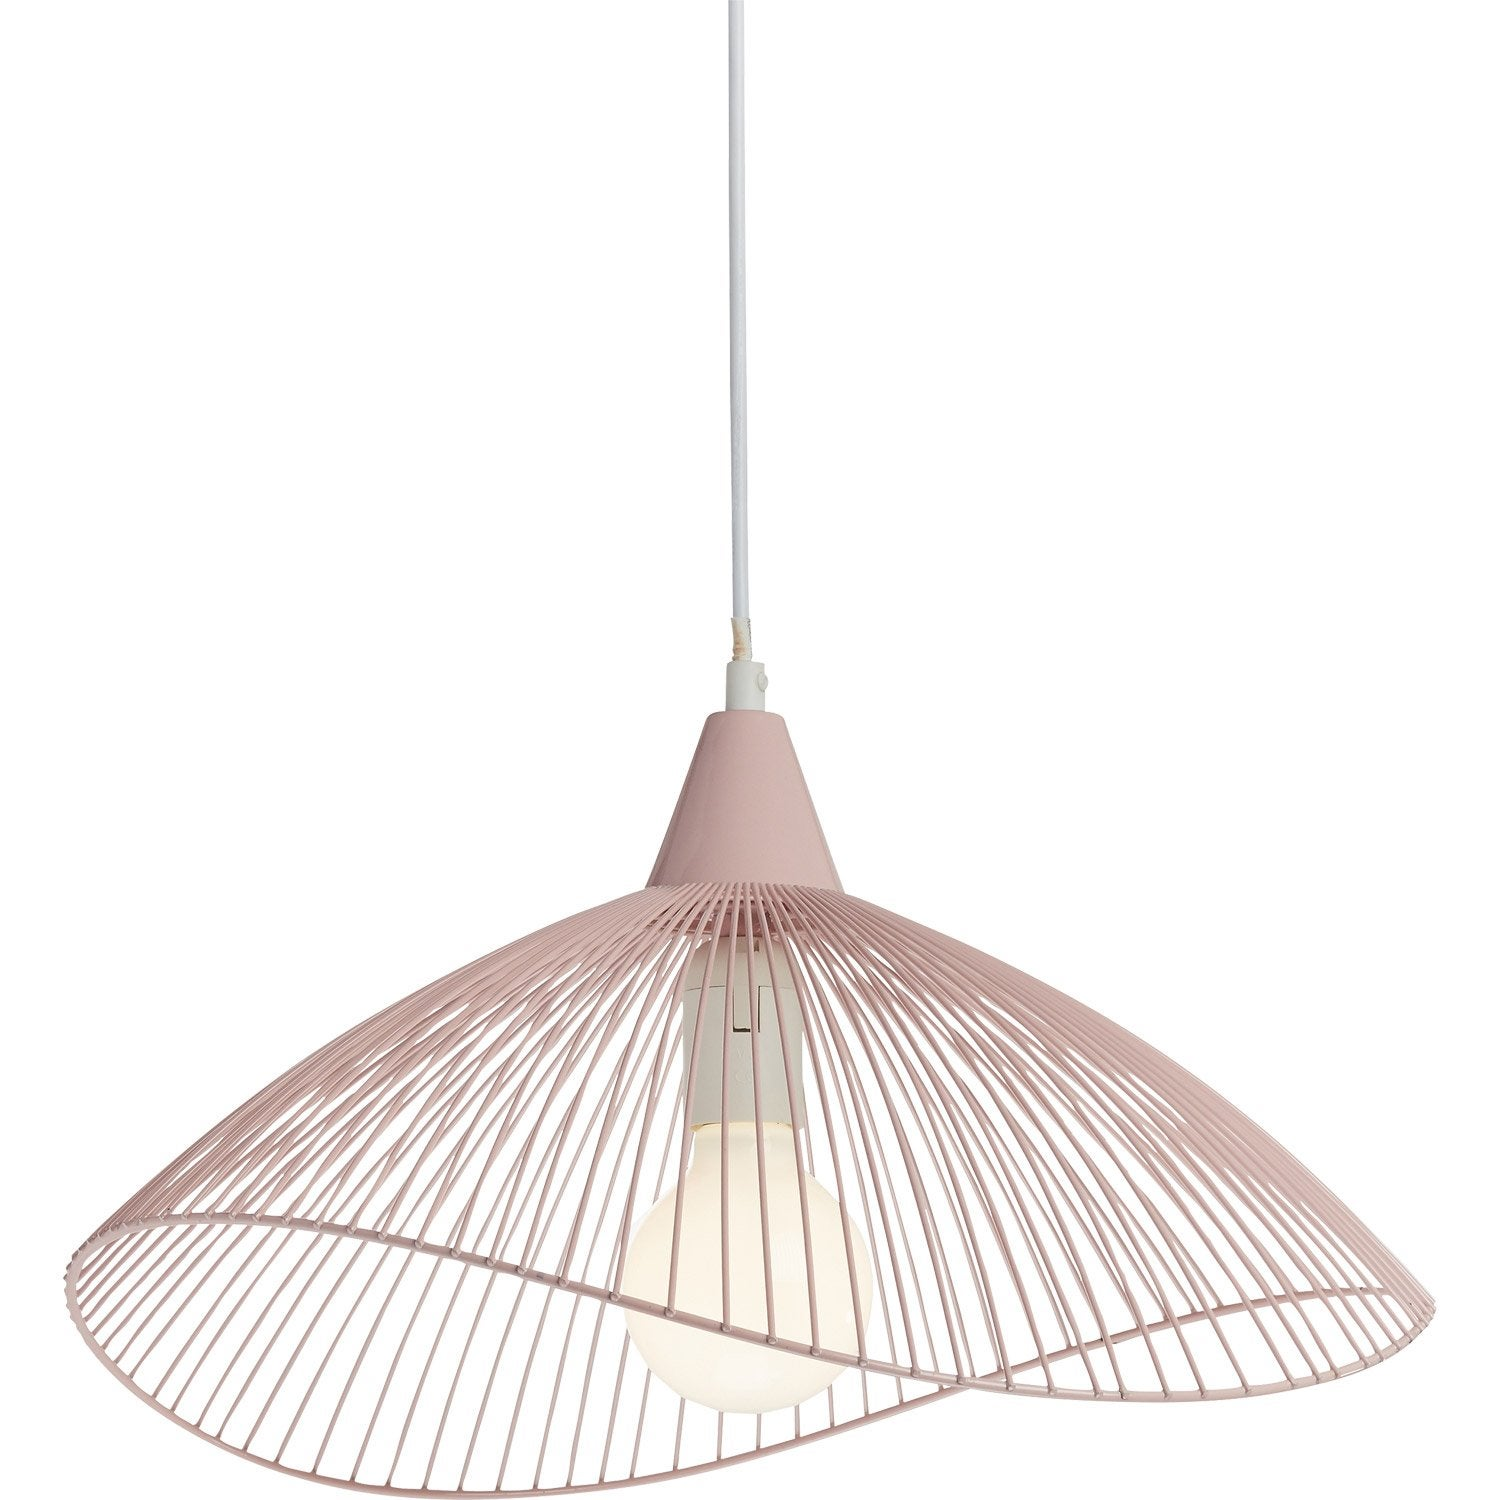 Suspension, e27 scandinave Kasteli métal rose SEYNAVE